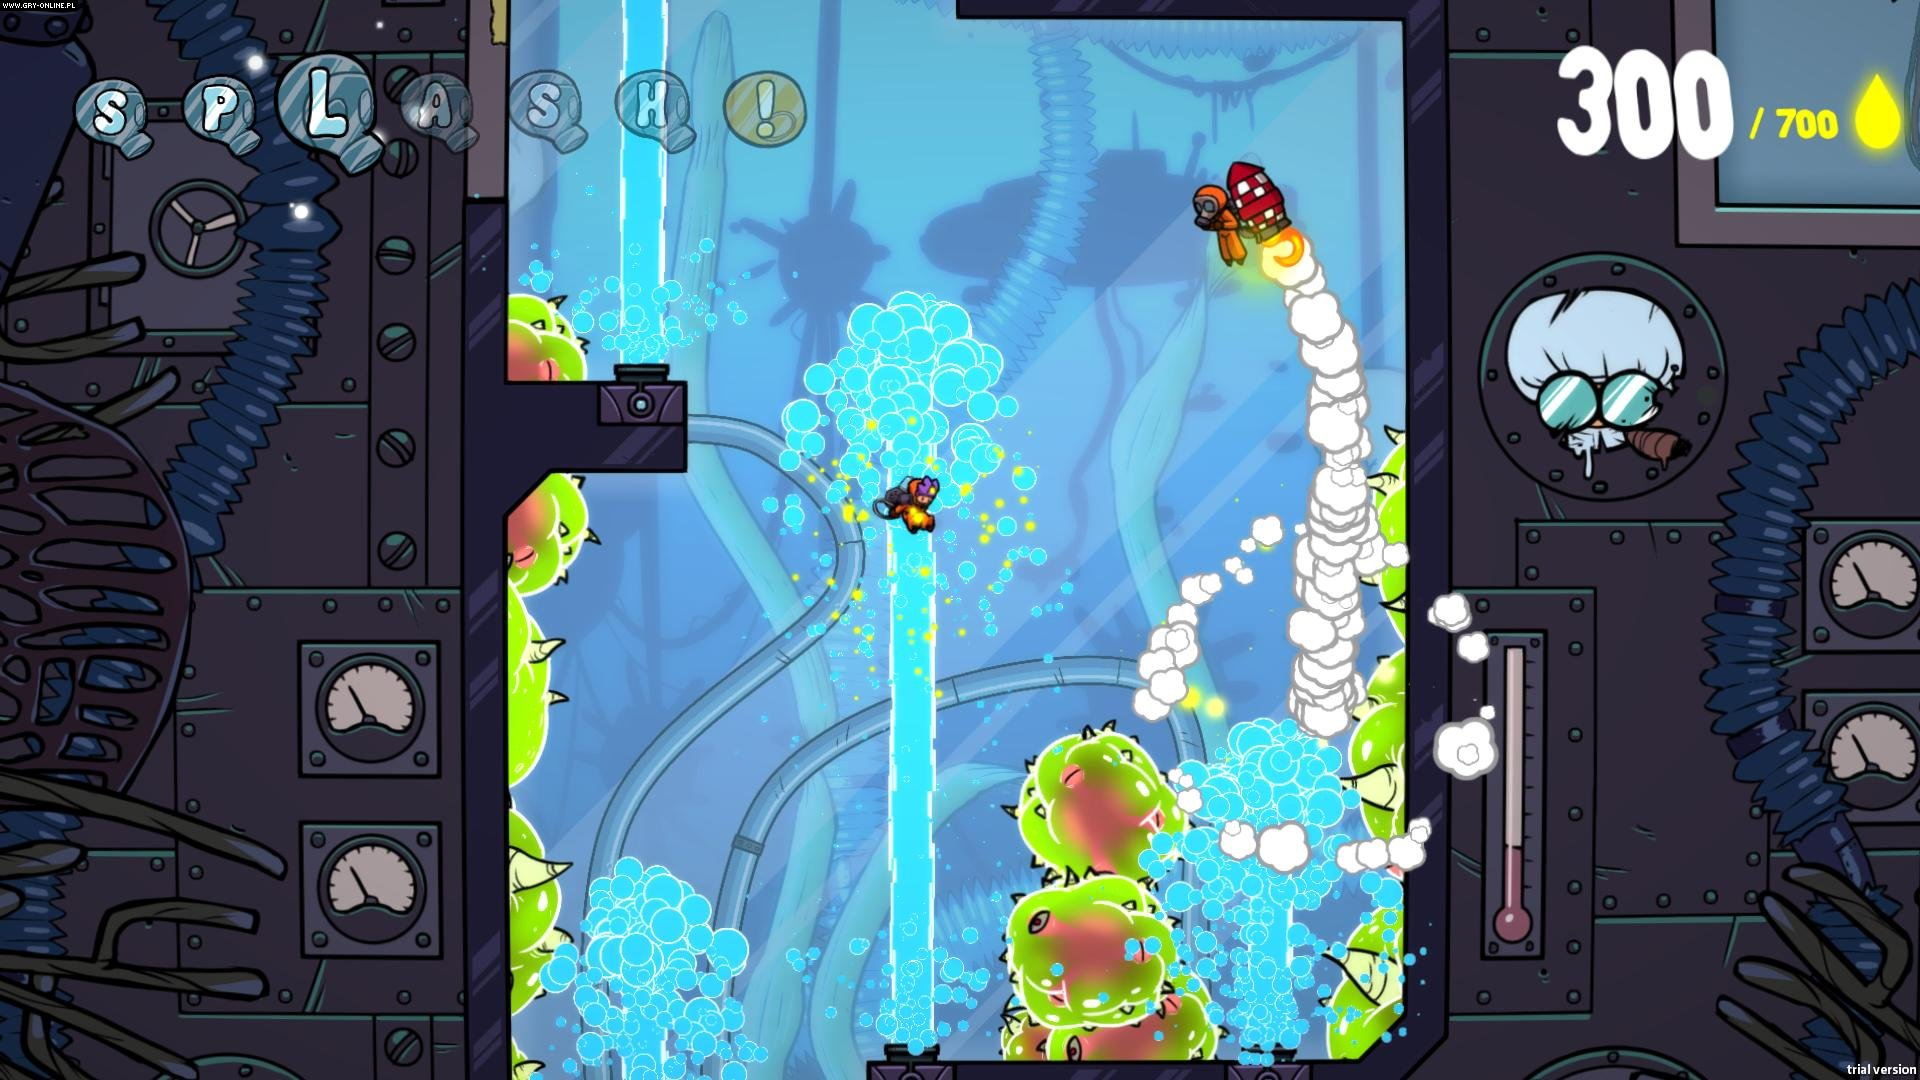 Splasher PC, PS4, XONE, Switch Games Image 11/11, Splashteam, Plug In Digital